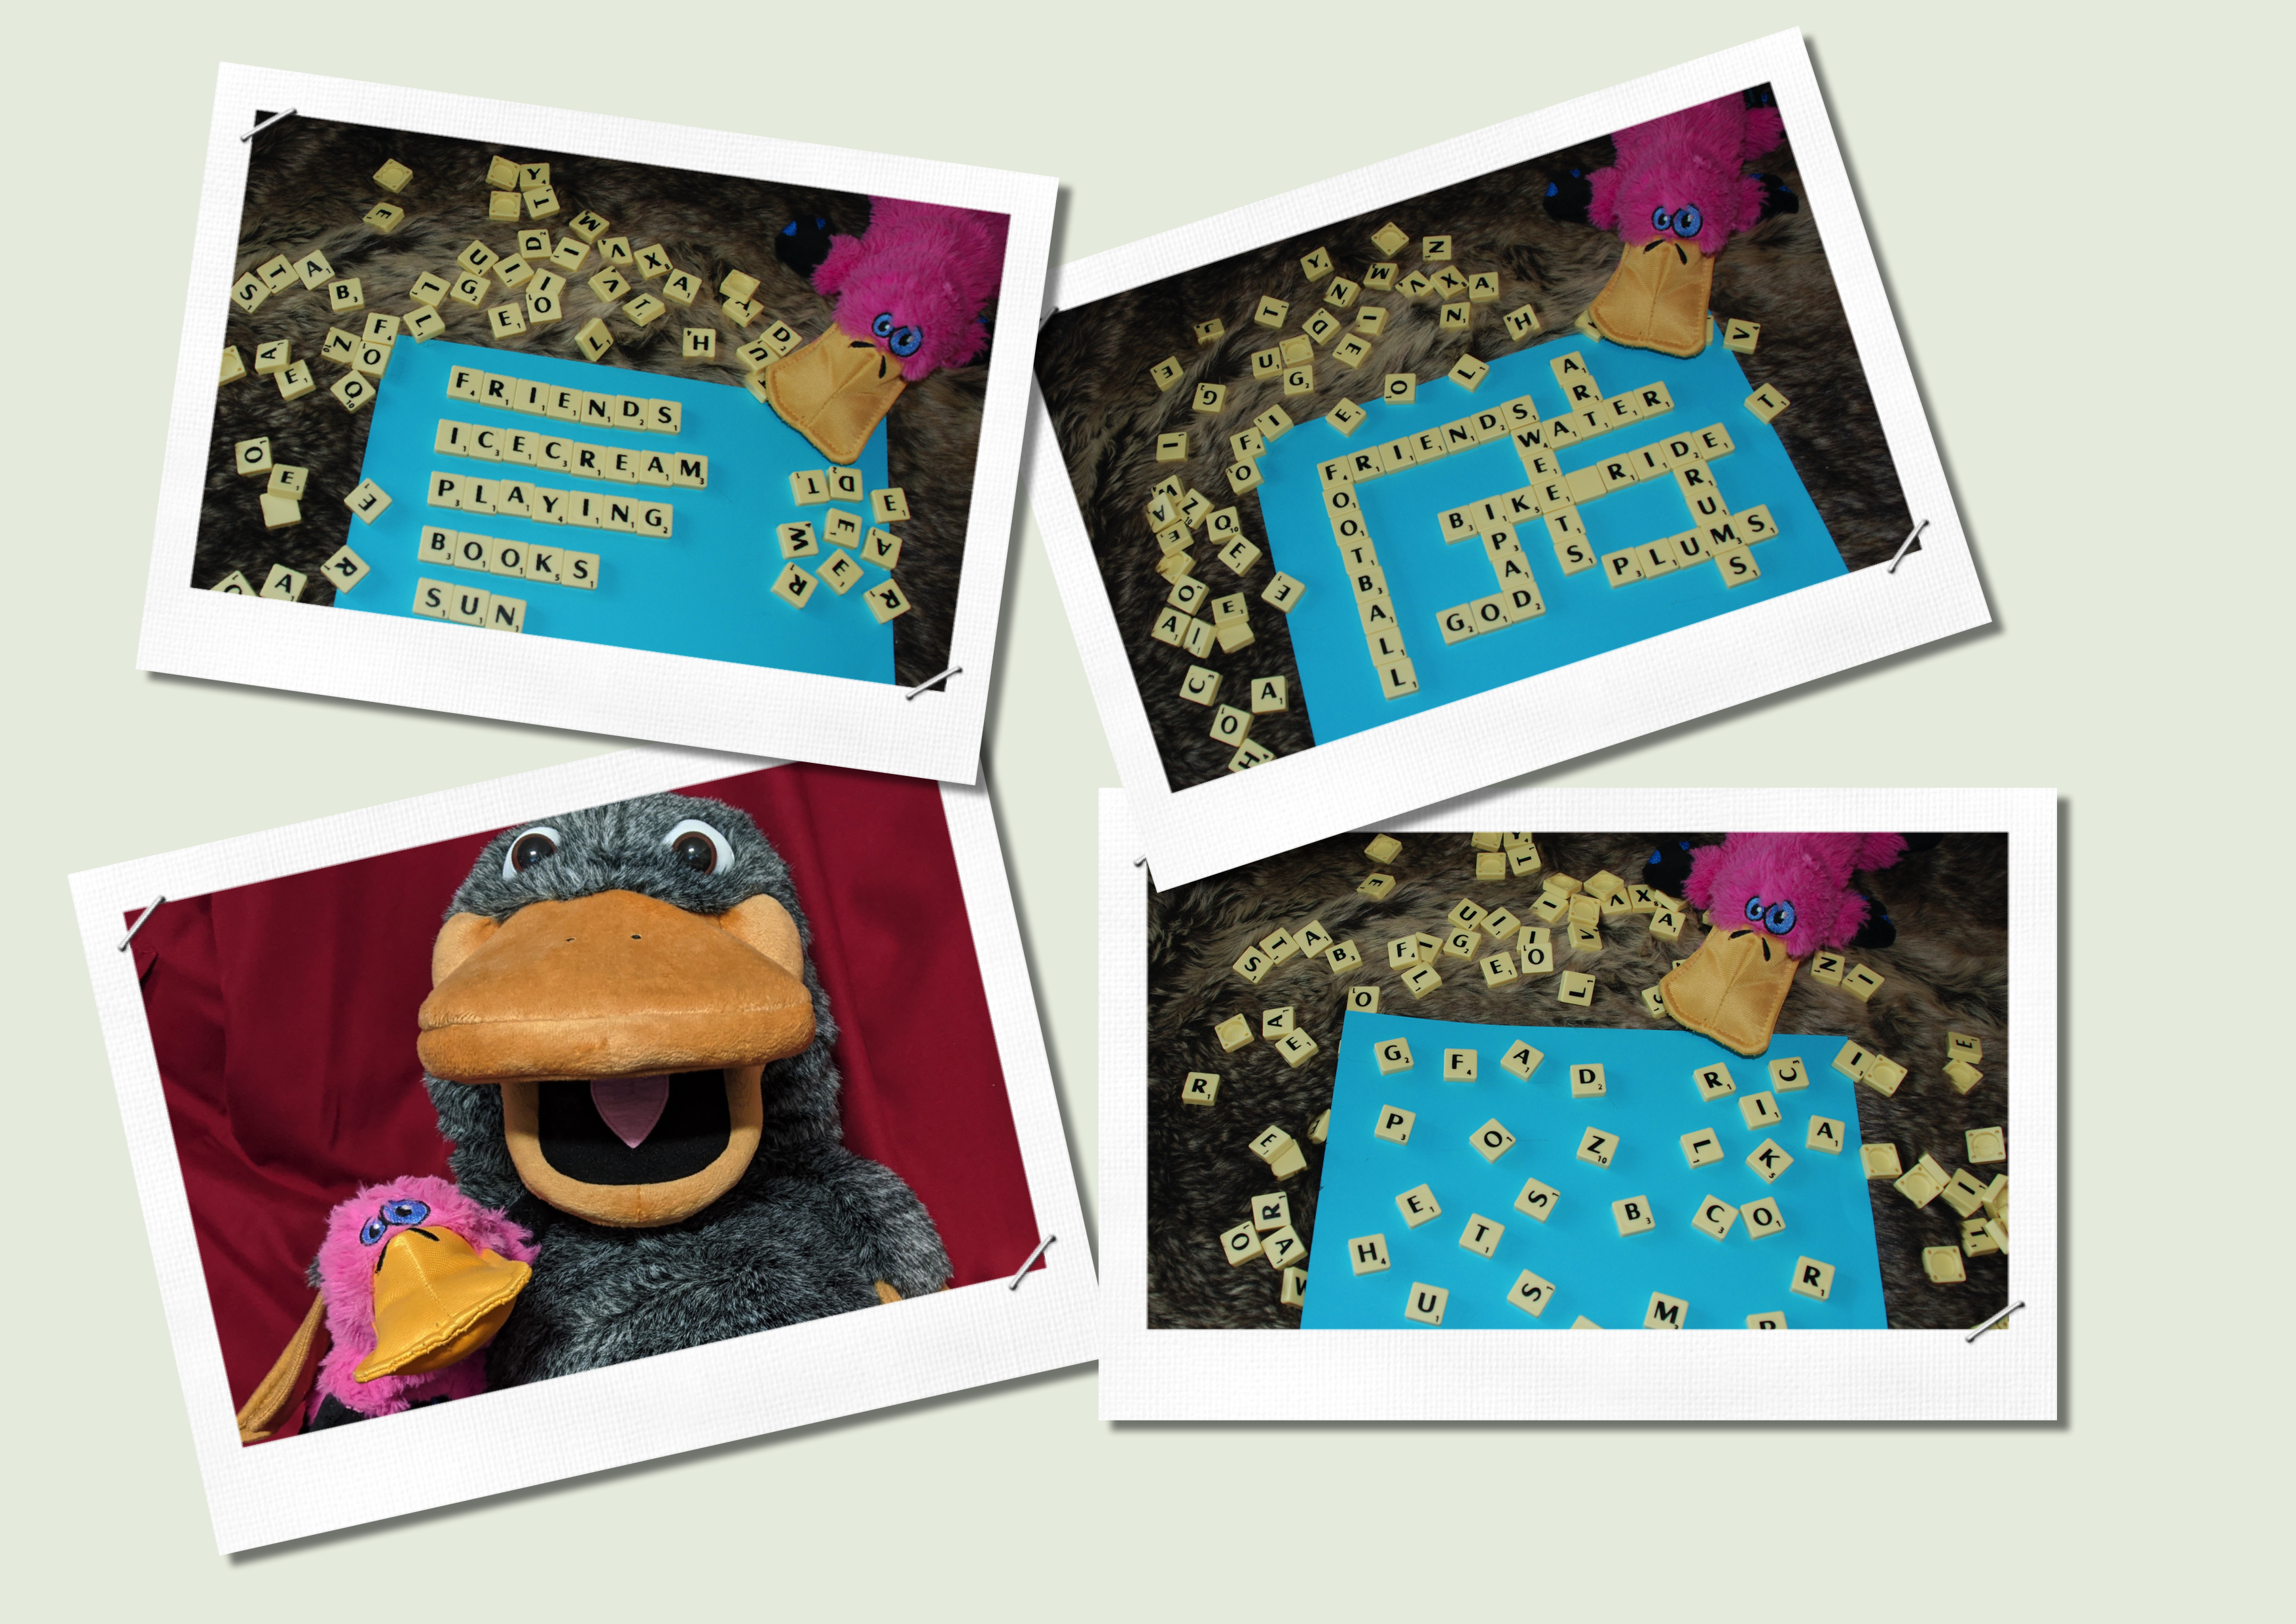 Three pictures of scrabble blocks being used for praying and on of a larger puppet platypus holding a smaller platypus toy